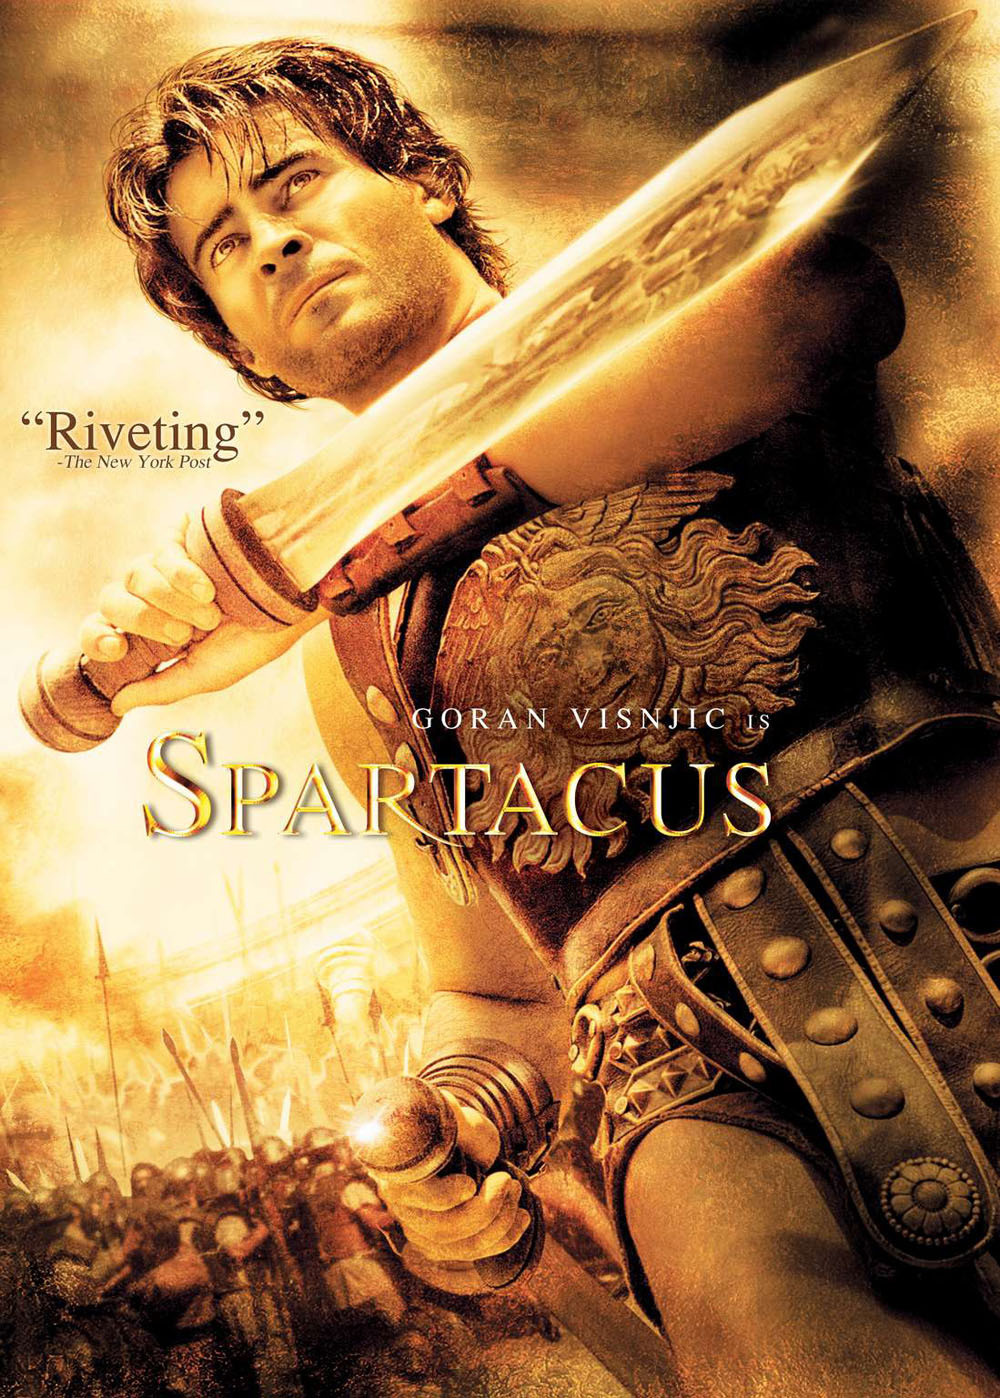 spartacus vengeance torrent complete